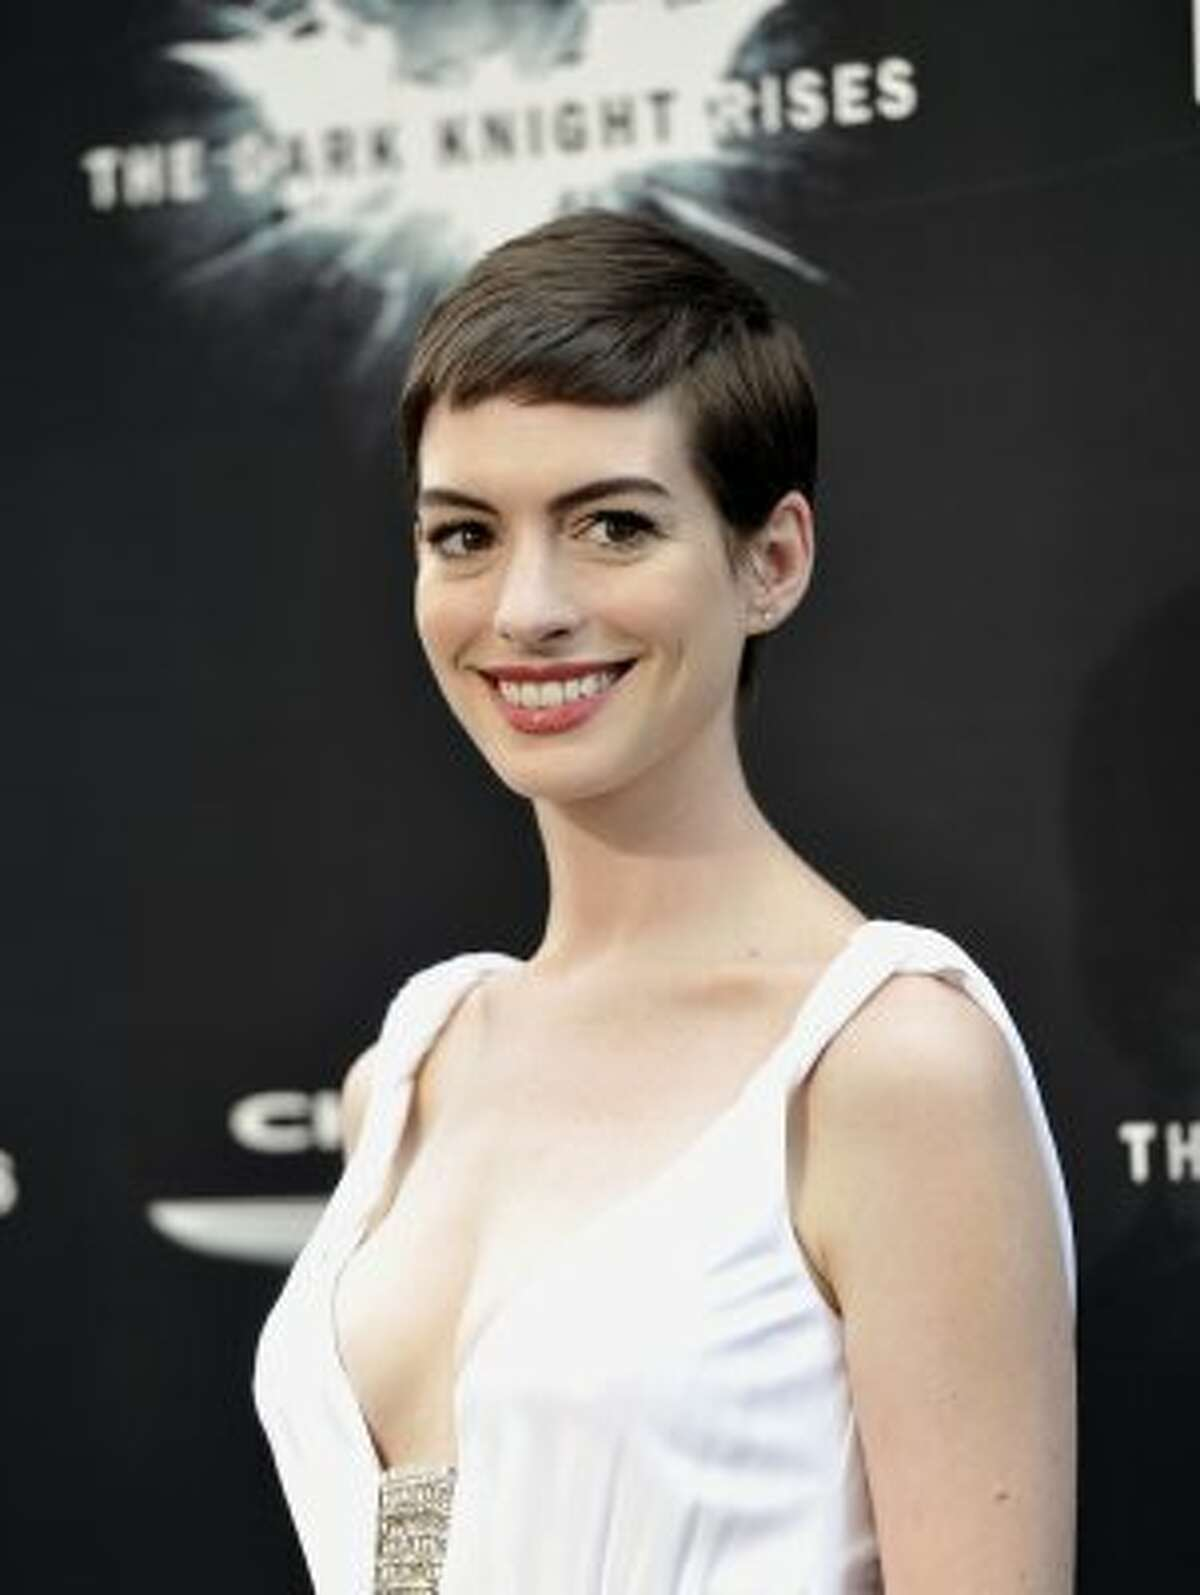 """Actress Anne Hathaway attends the world premiere of """"The Dark Knight Rises"""" at the AMC Lincoln Square Theater on Monday July 16, 2012 in New York. (Photo by Evan Agostini/Invision/AP) (Evan Agostini / Associated Press)"""